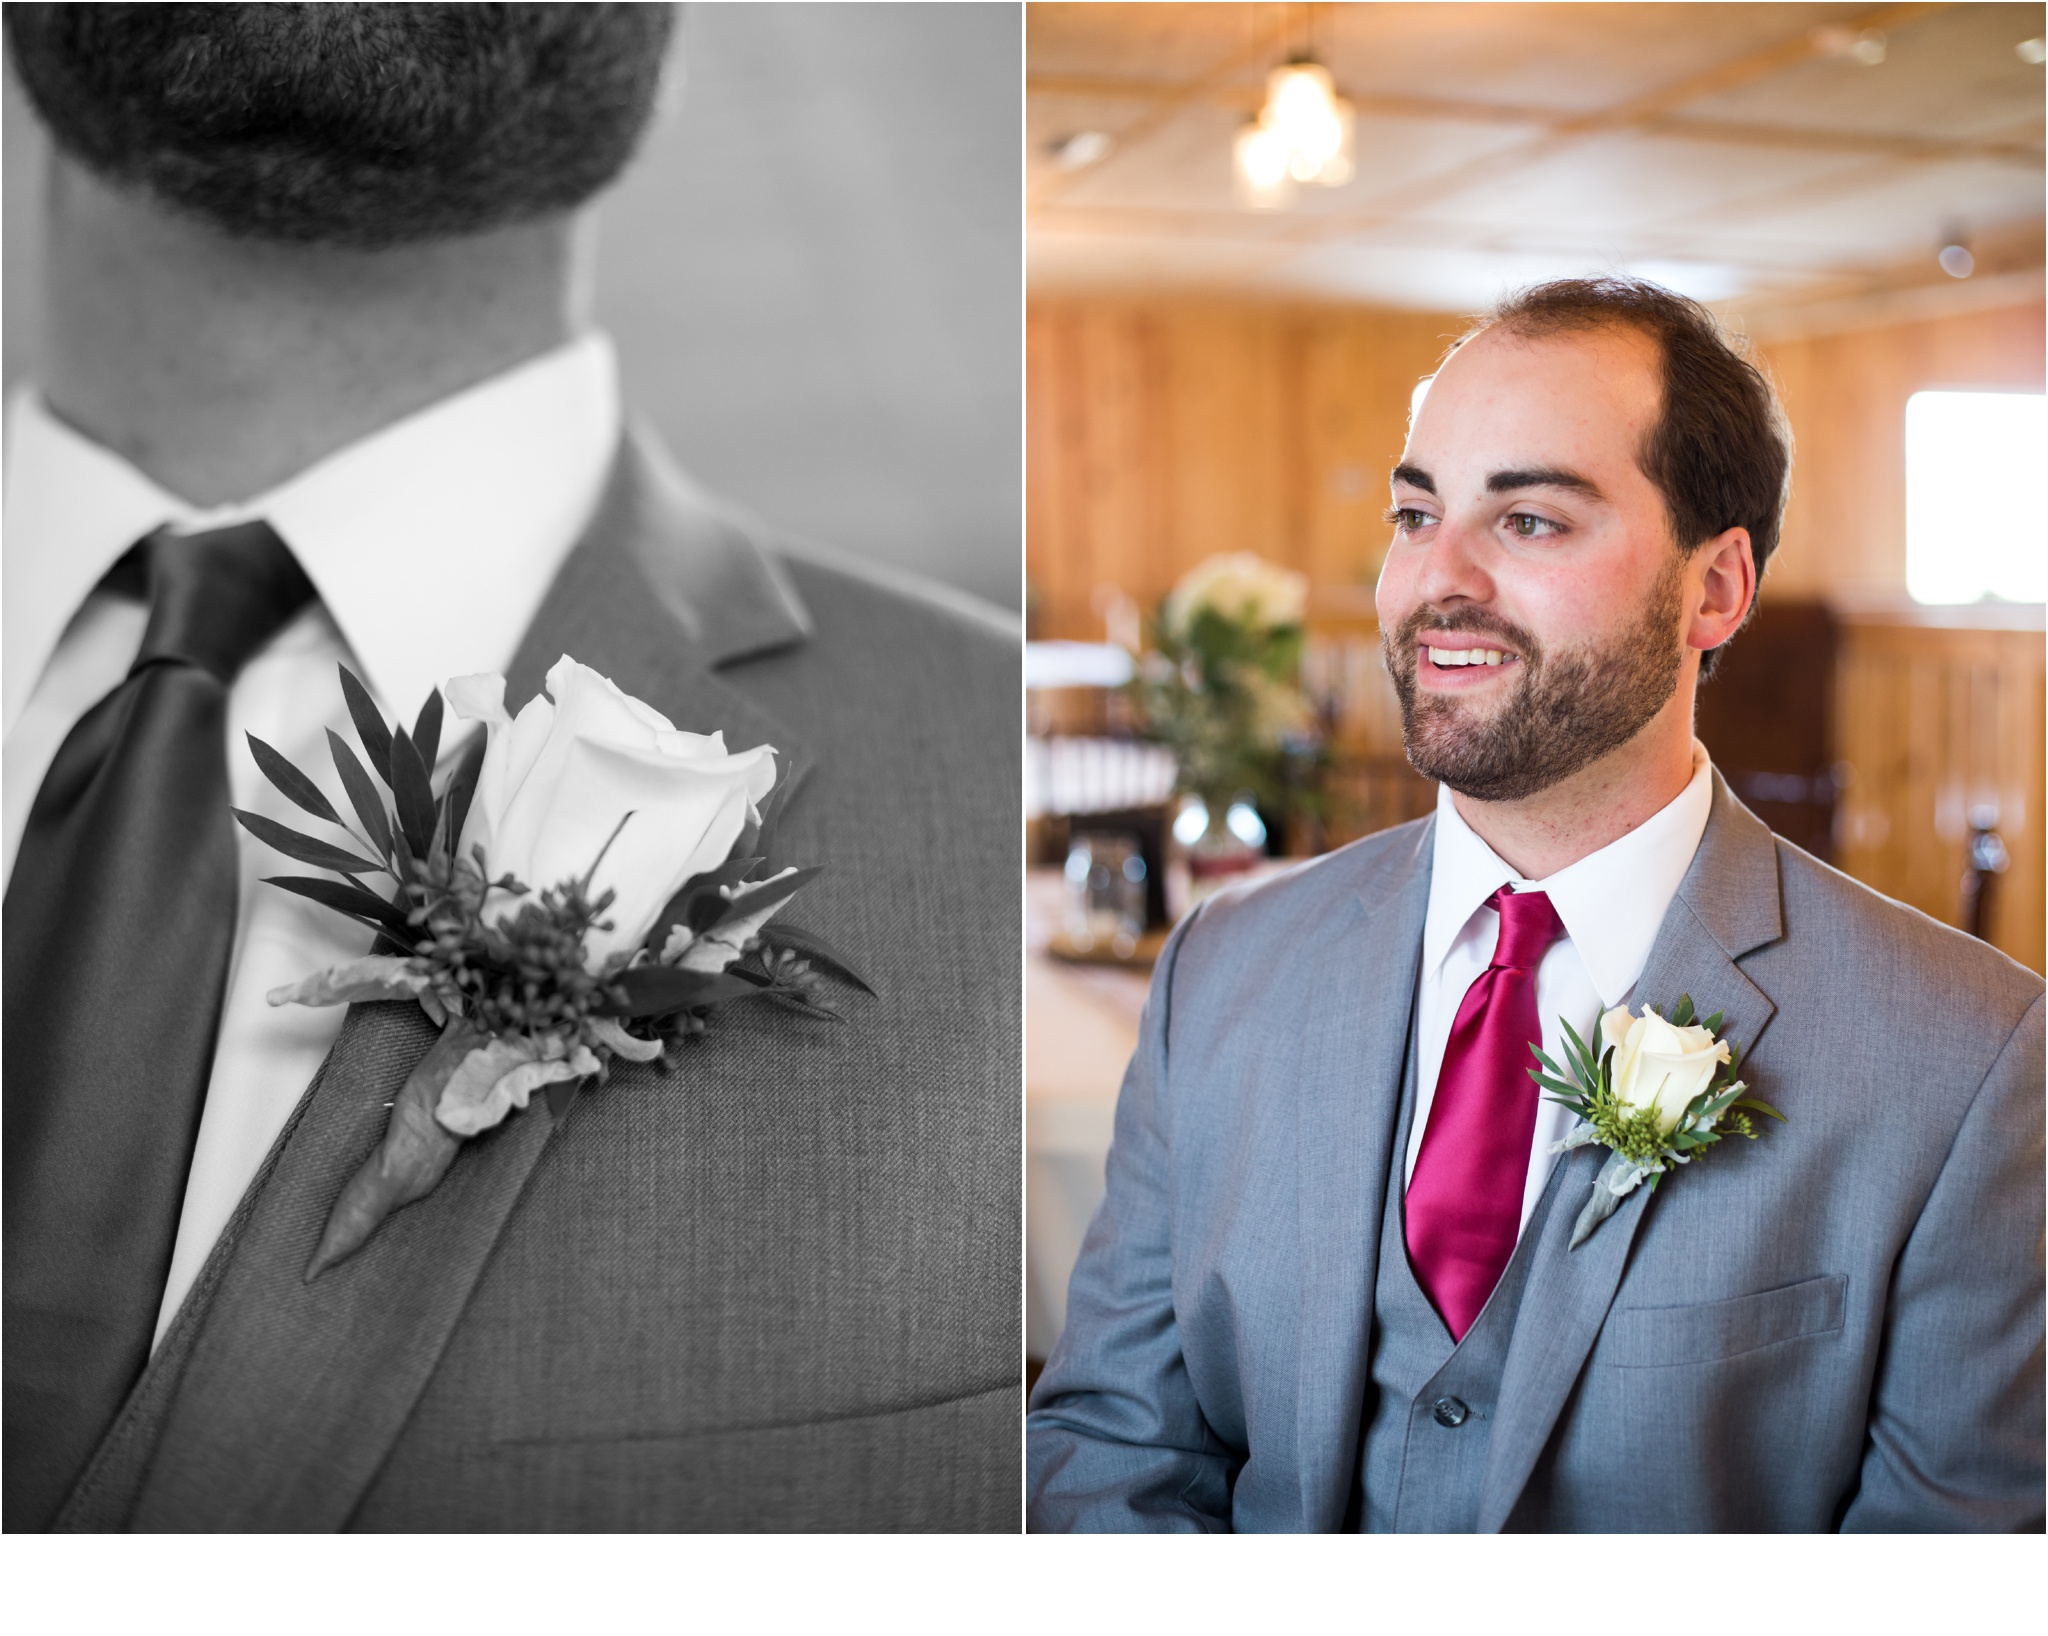 Rainey_Gregg_Photography_St._Simons_Island_Georgia_California_Wedding_Portrait_Photography_0465.jpg